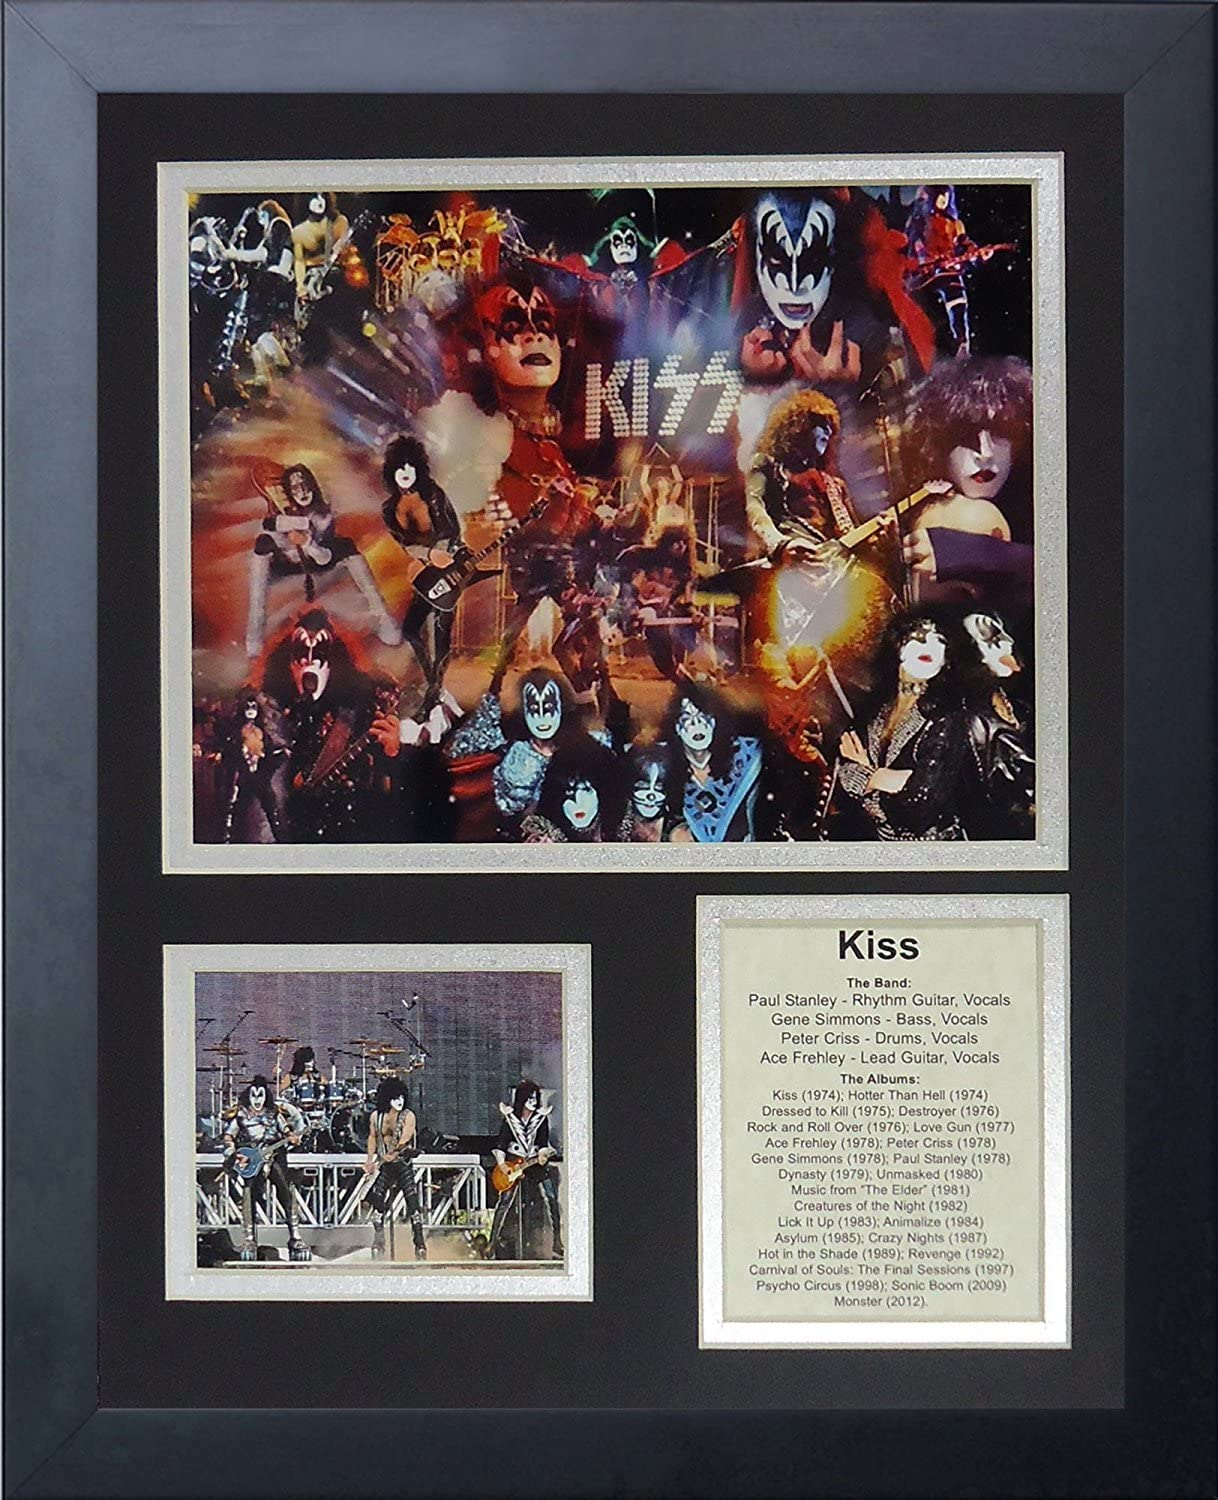 11x14-Inch Legends Never Die KISS Framed Photo Collage